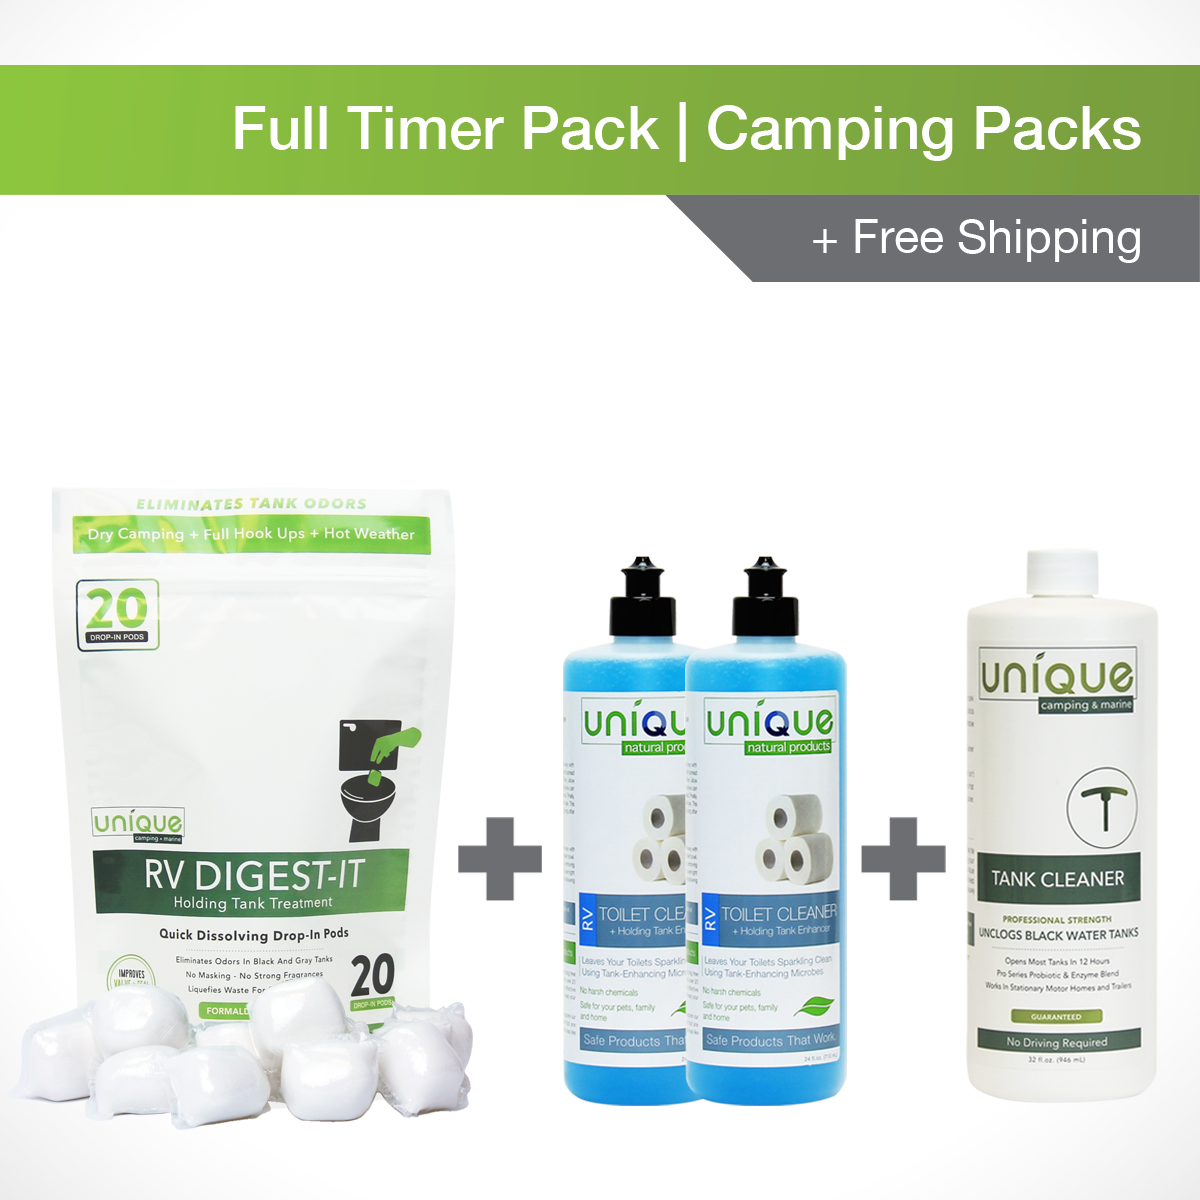 Fulltimer Camping Pack. RV Digest-It, Drop-in pods RV Toilet Cleaner